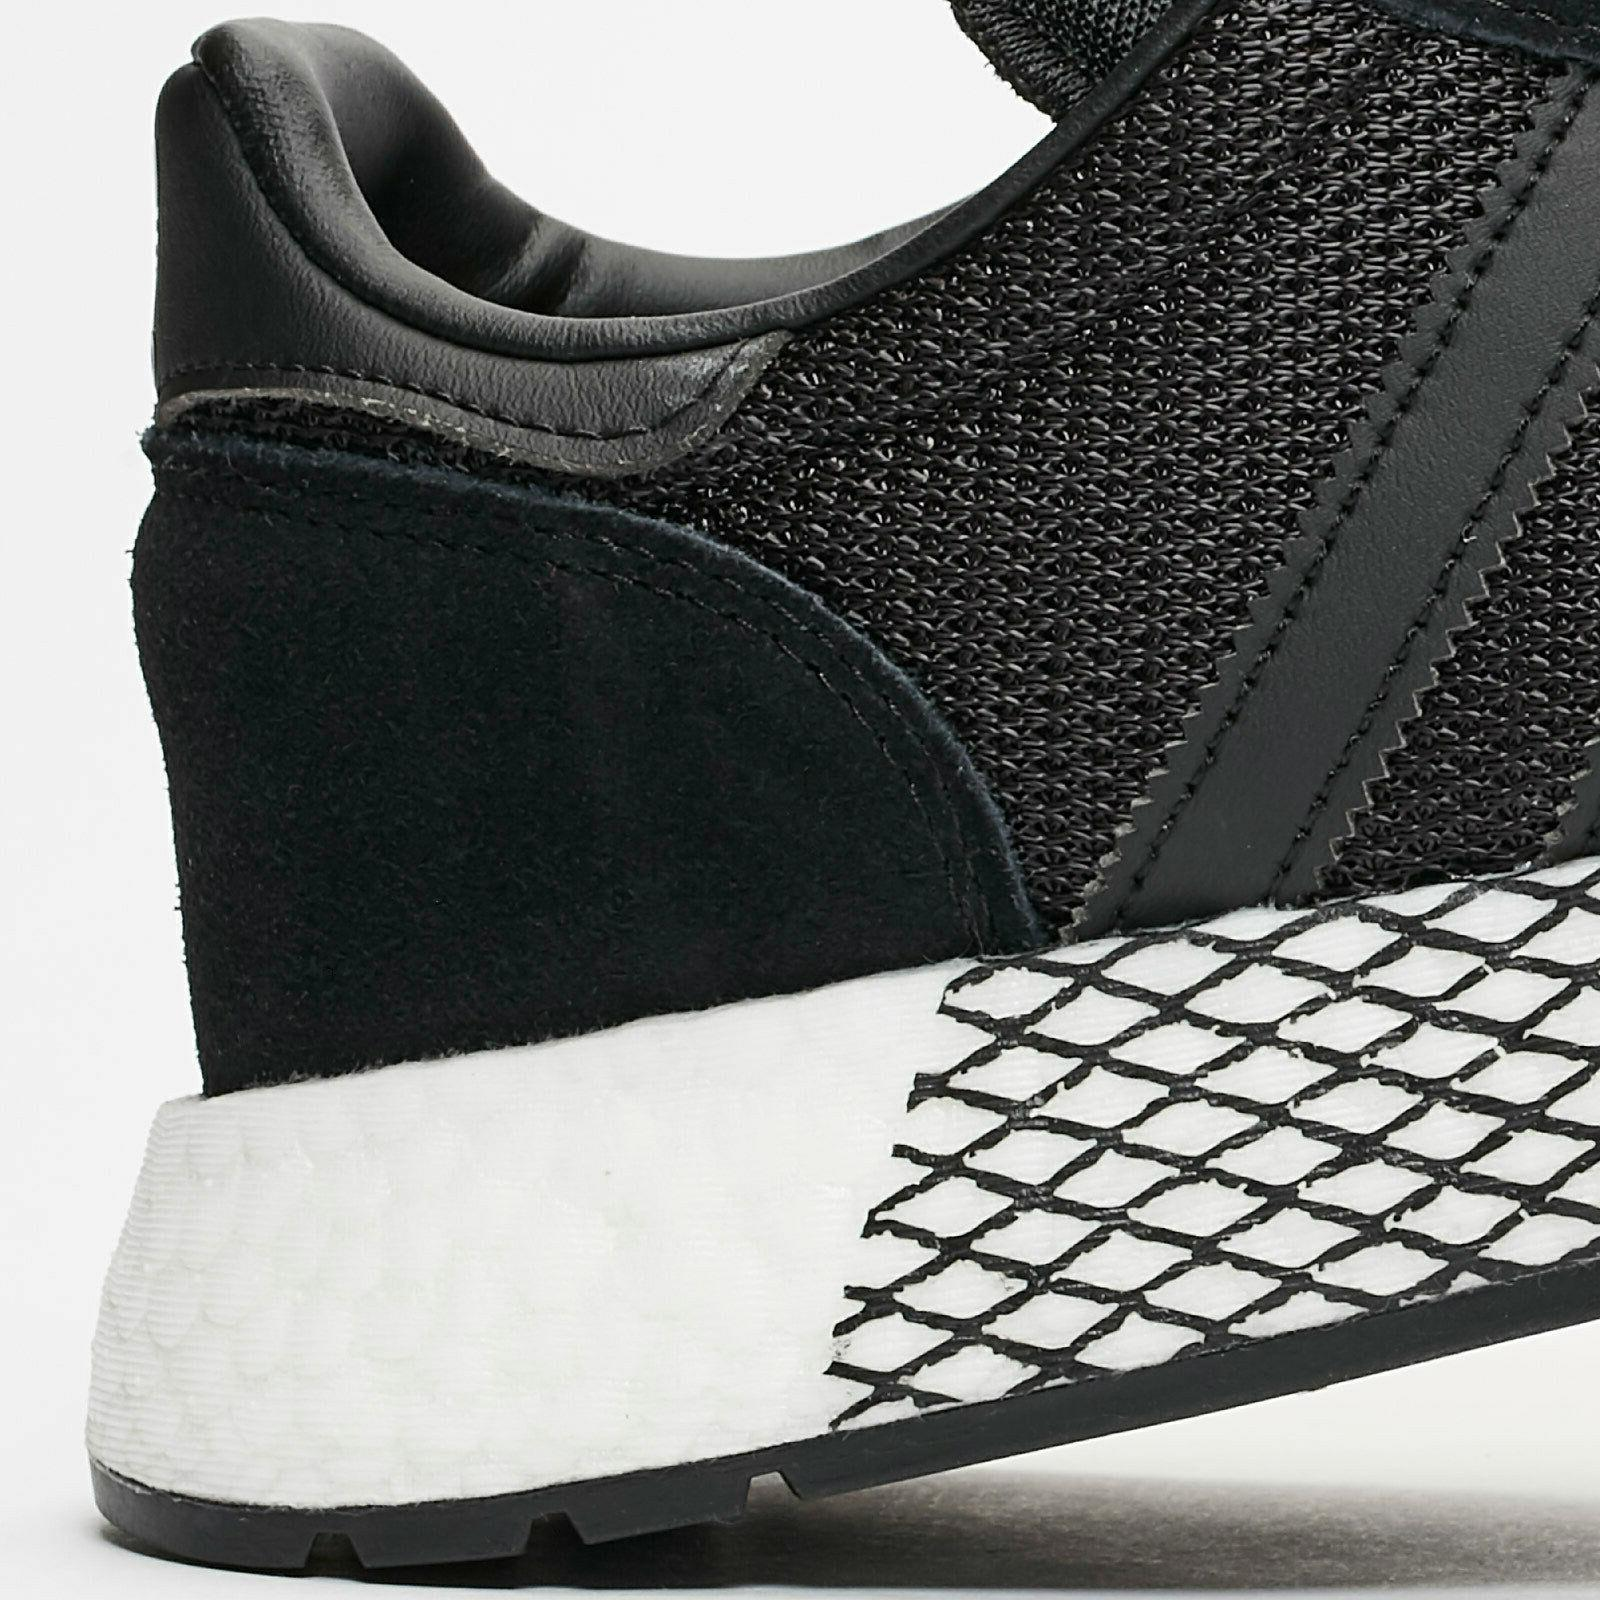 Adidas Black White Shoes Sneakers